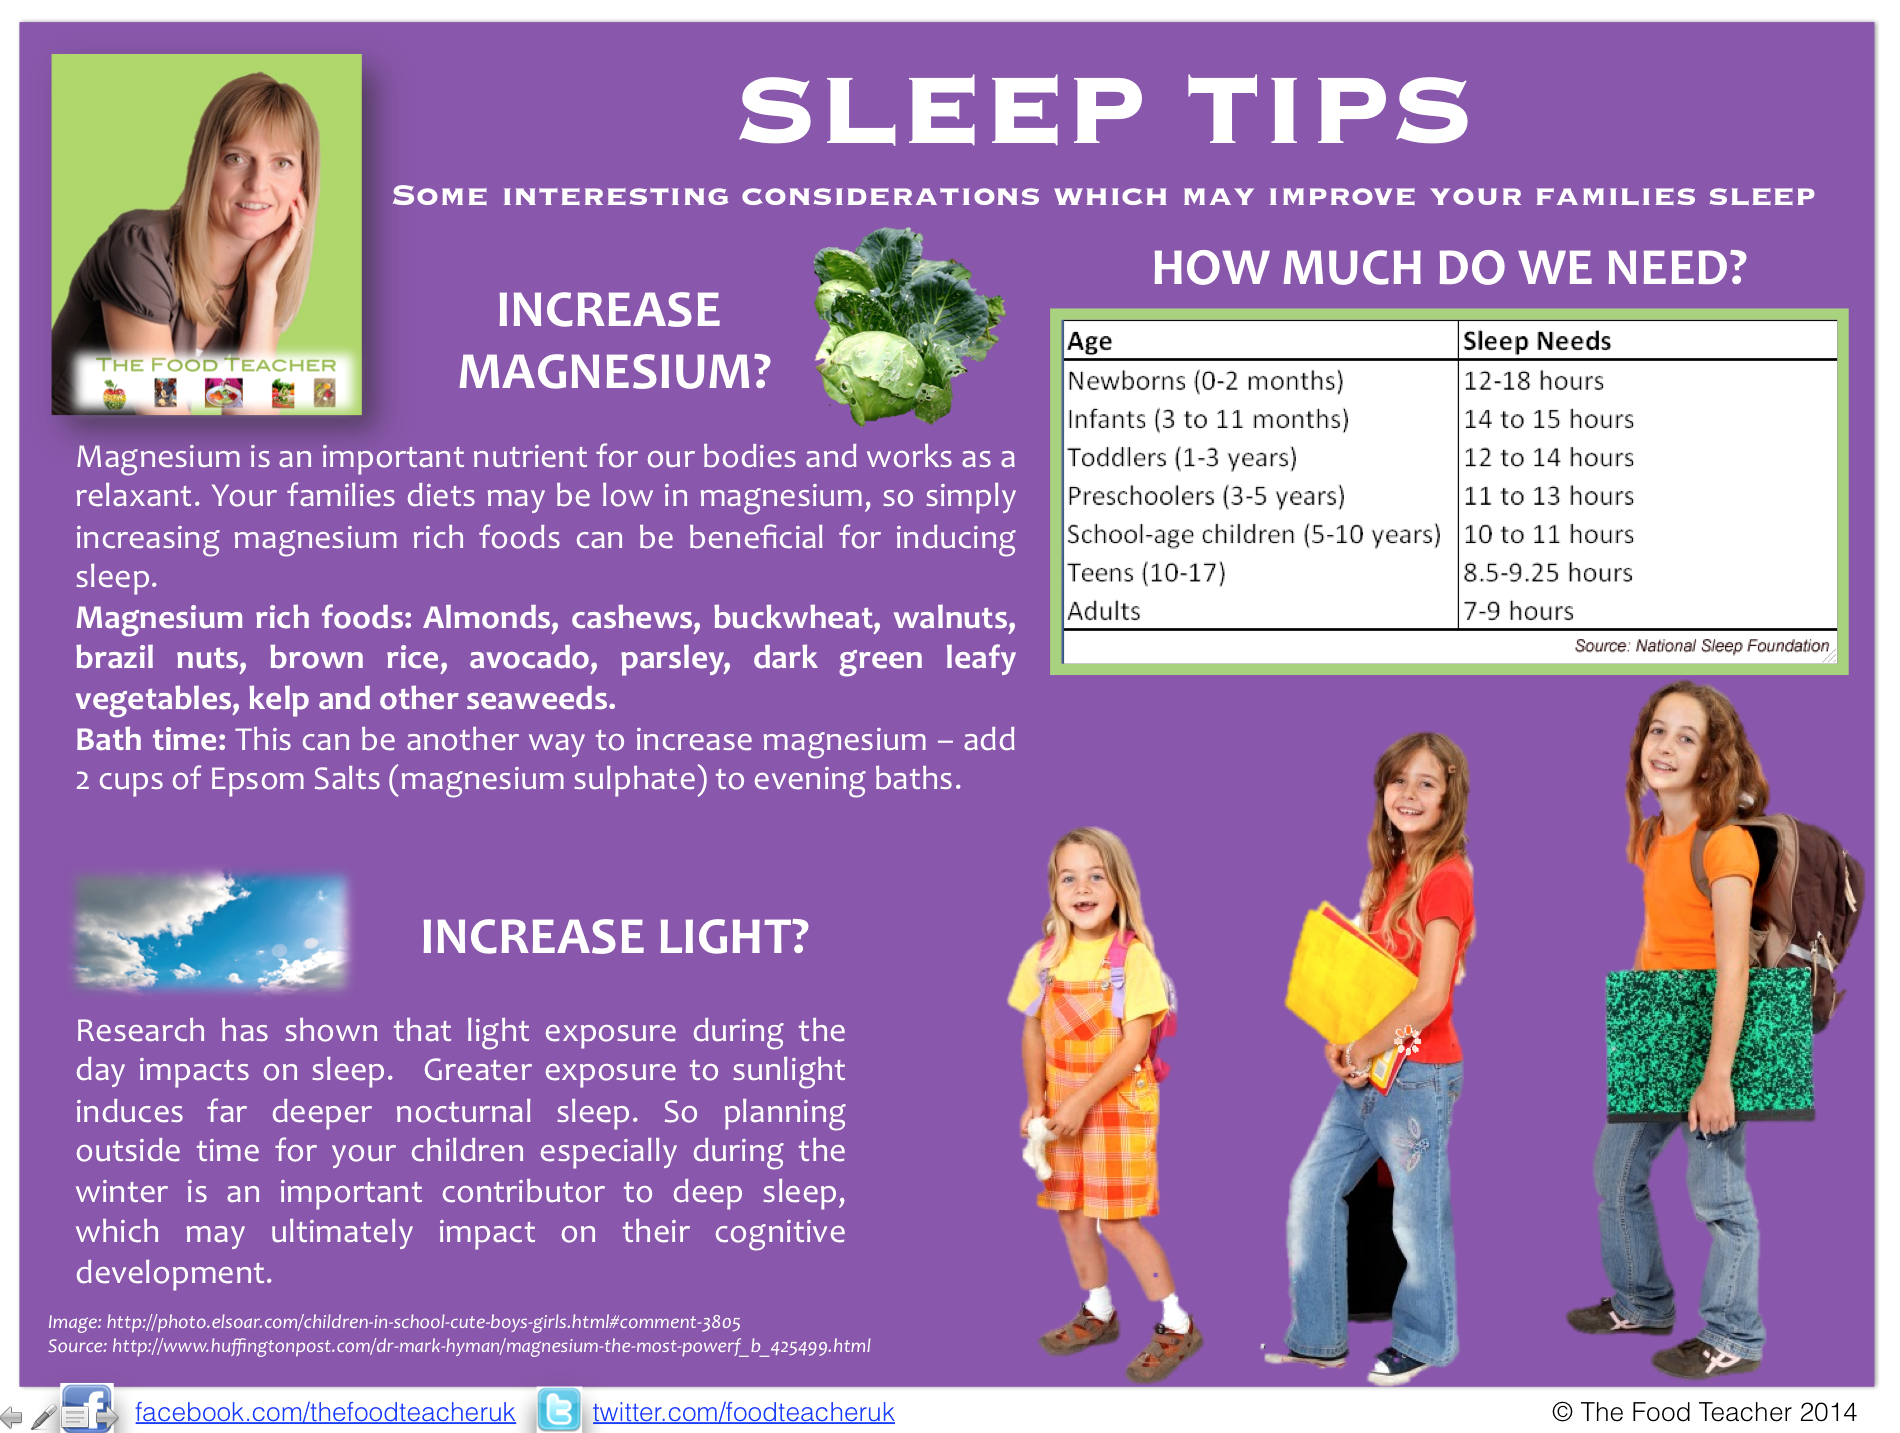 Top Sleep Tips For The Whole Family